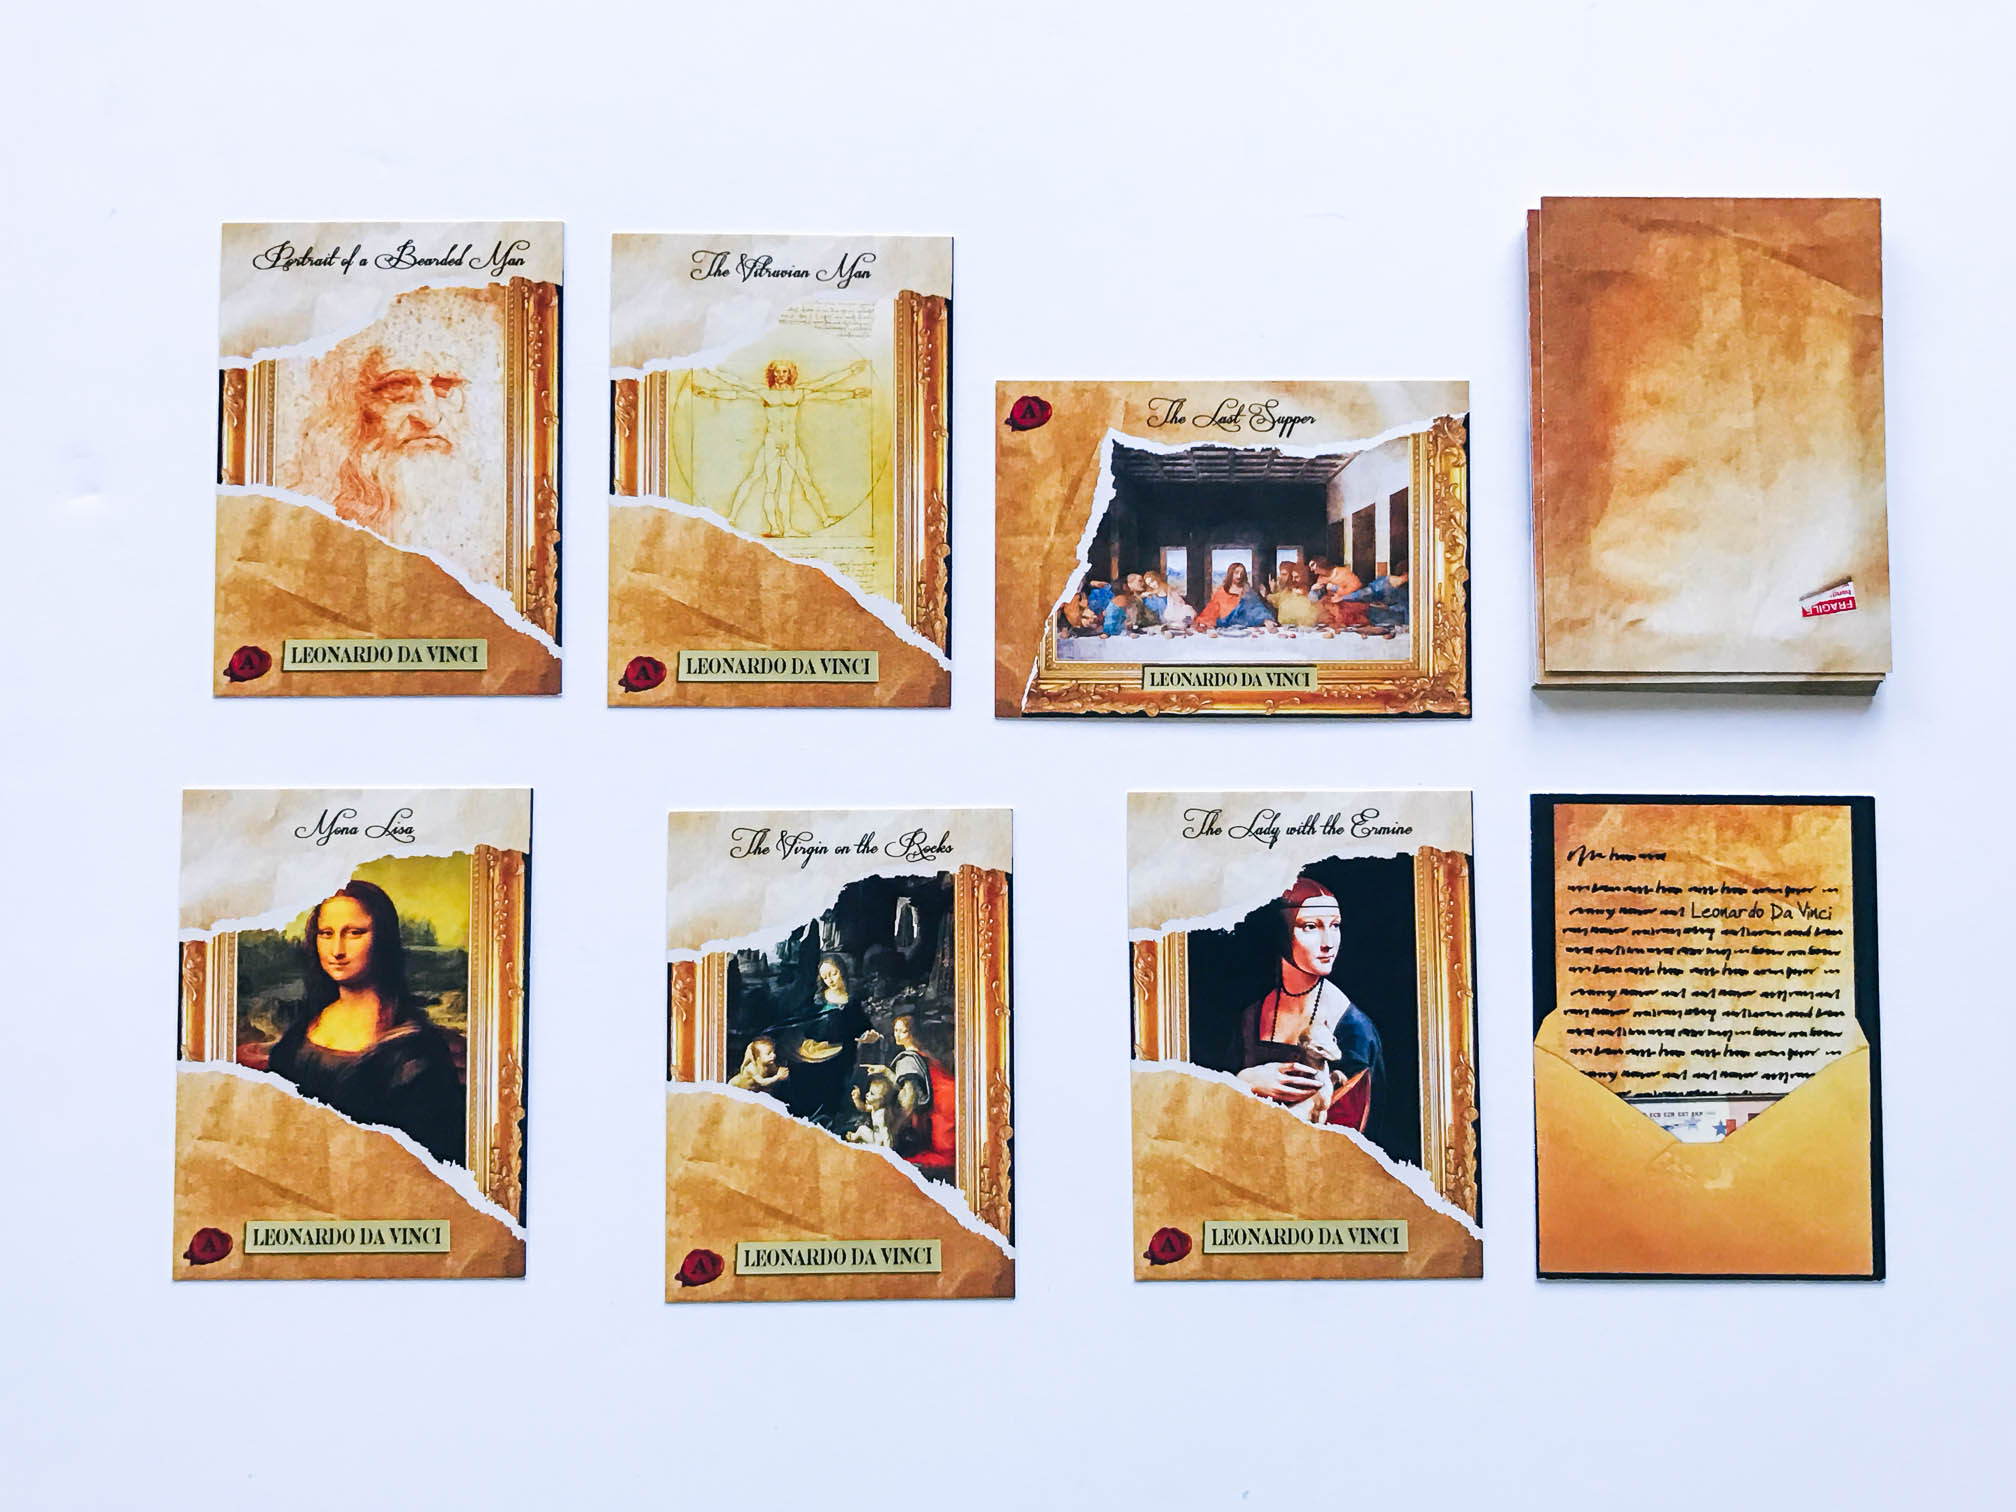 Exclusive look at the Leonardo DaVinci expansion pack!